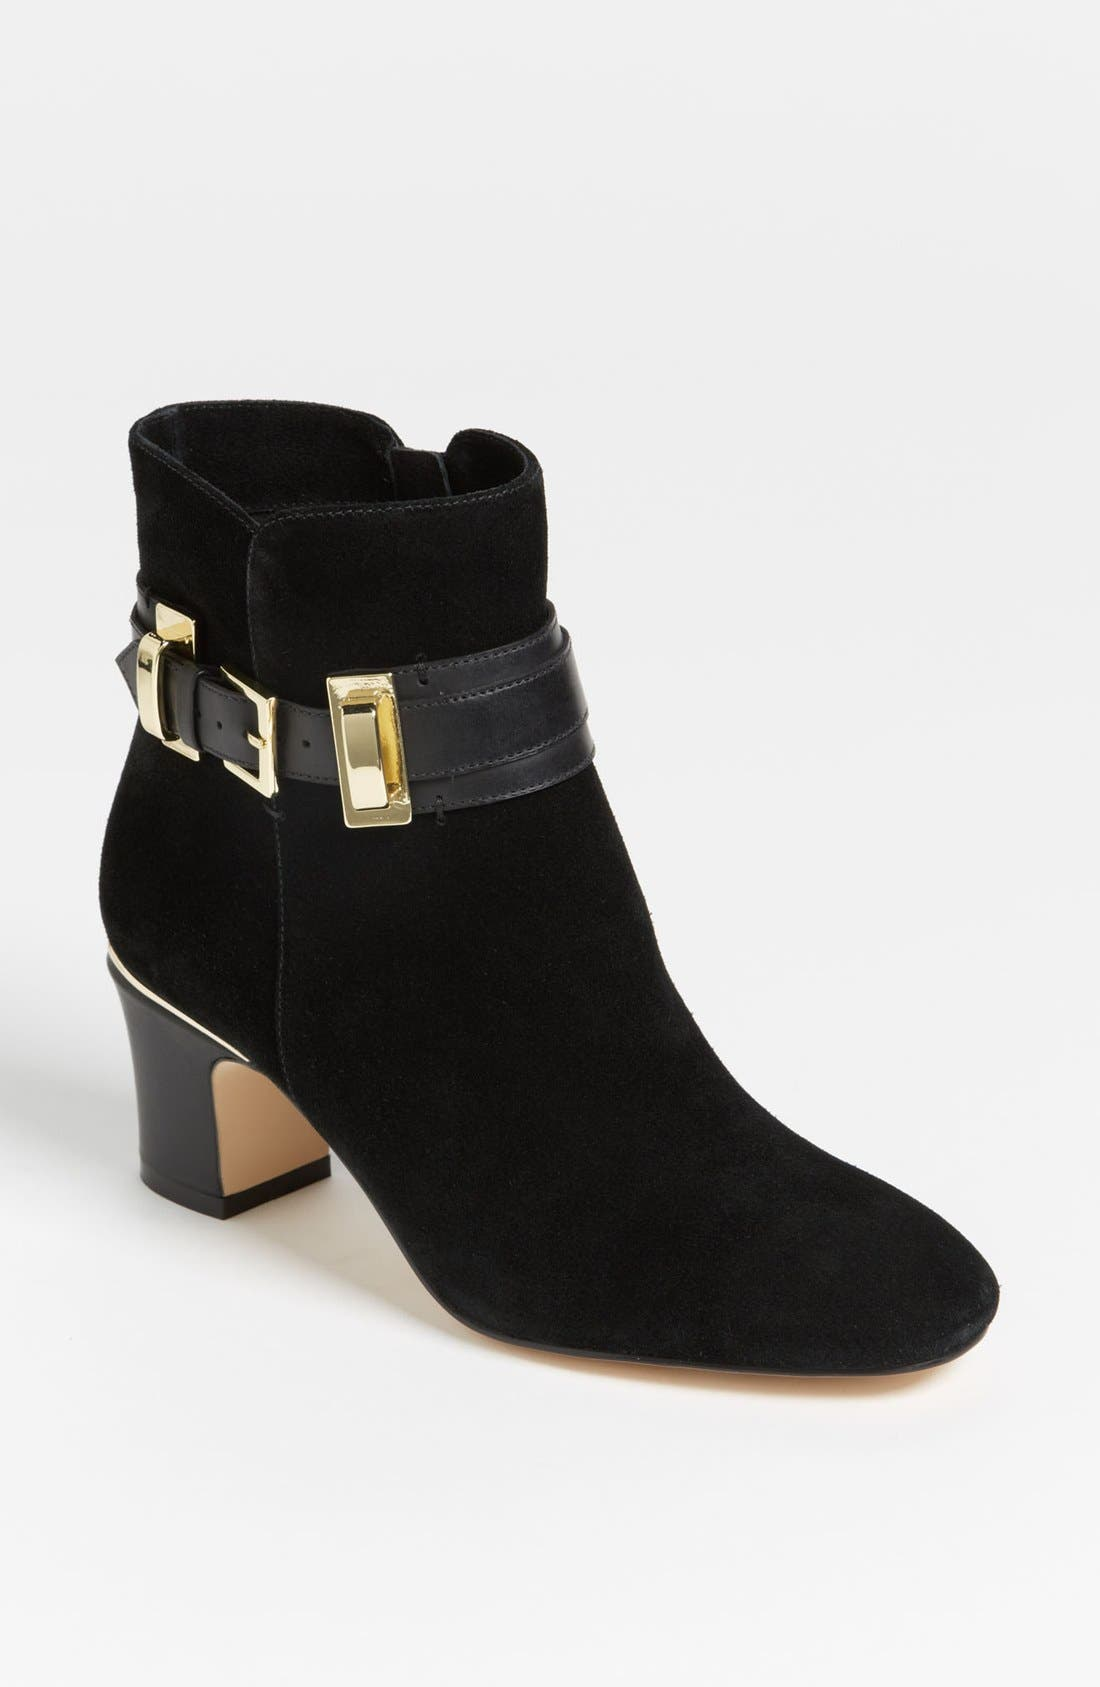 Alternate Image 1 Selected - Joan & David 'Renton' Boot (Nordstrom Exclusive)